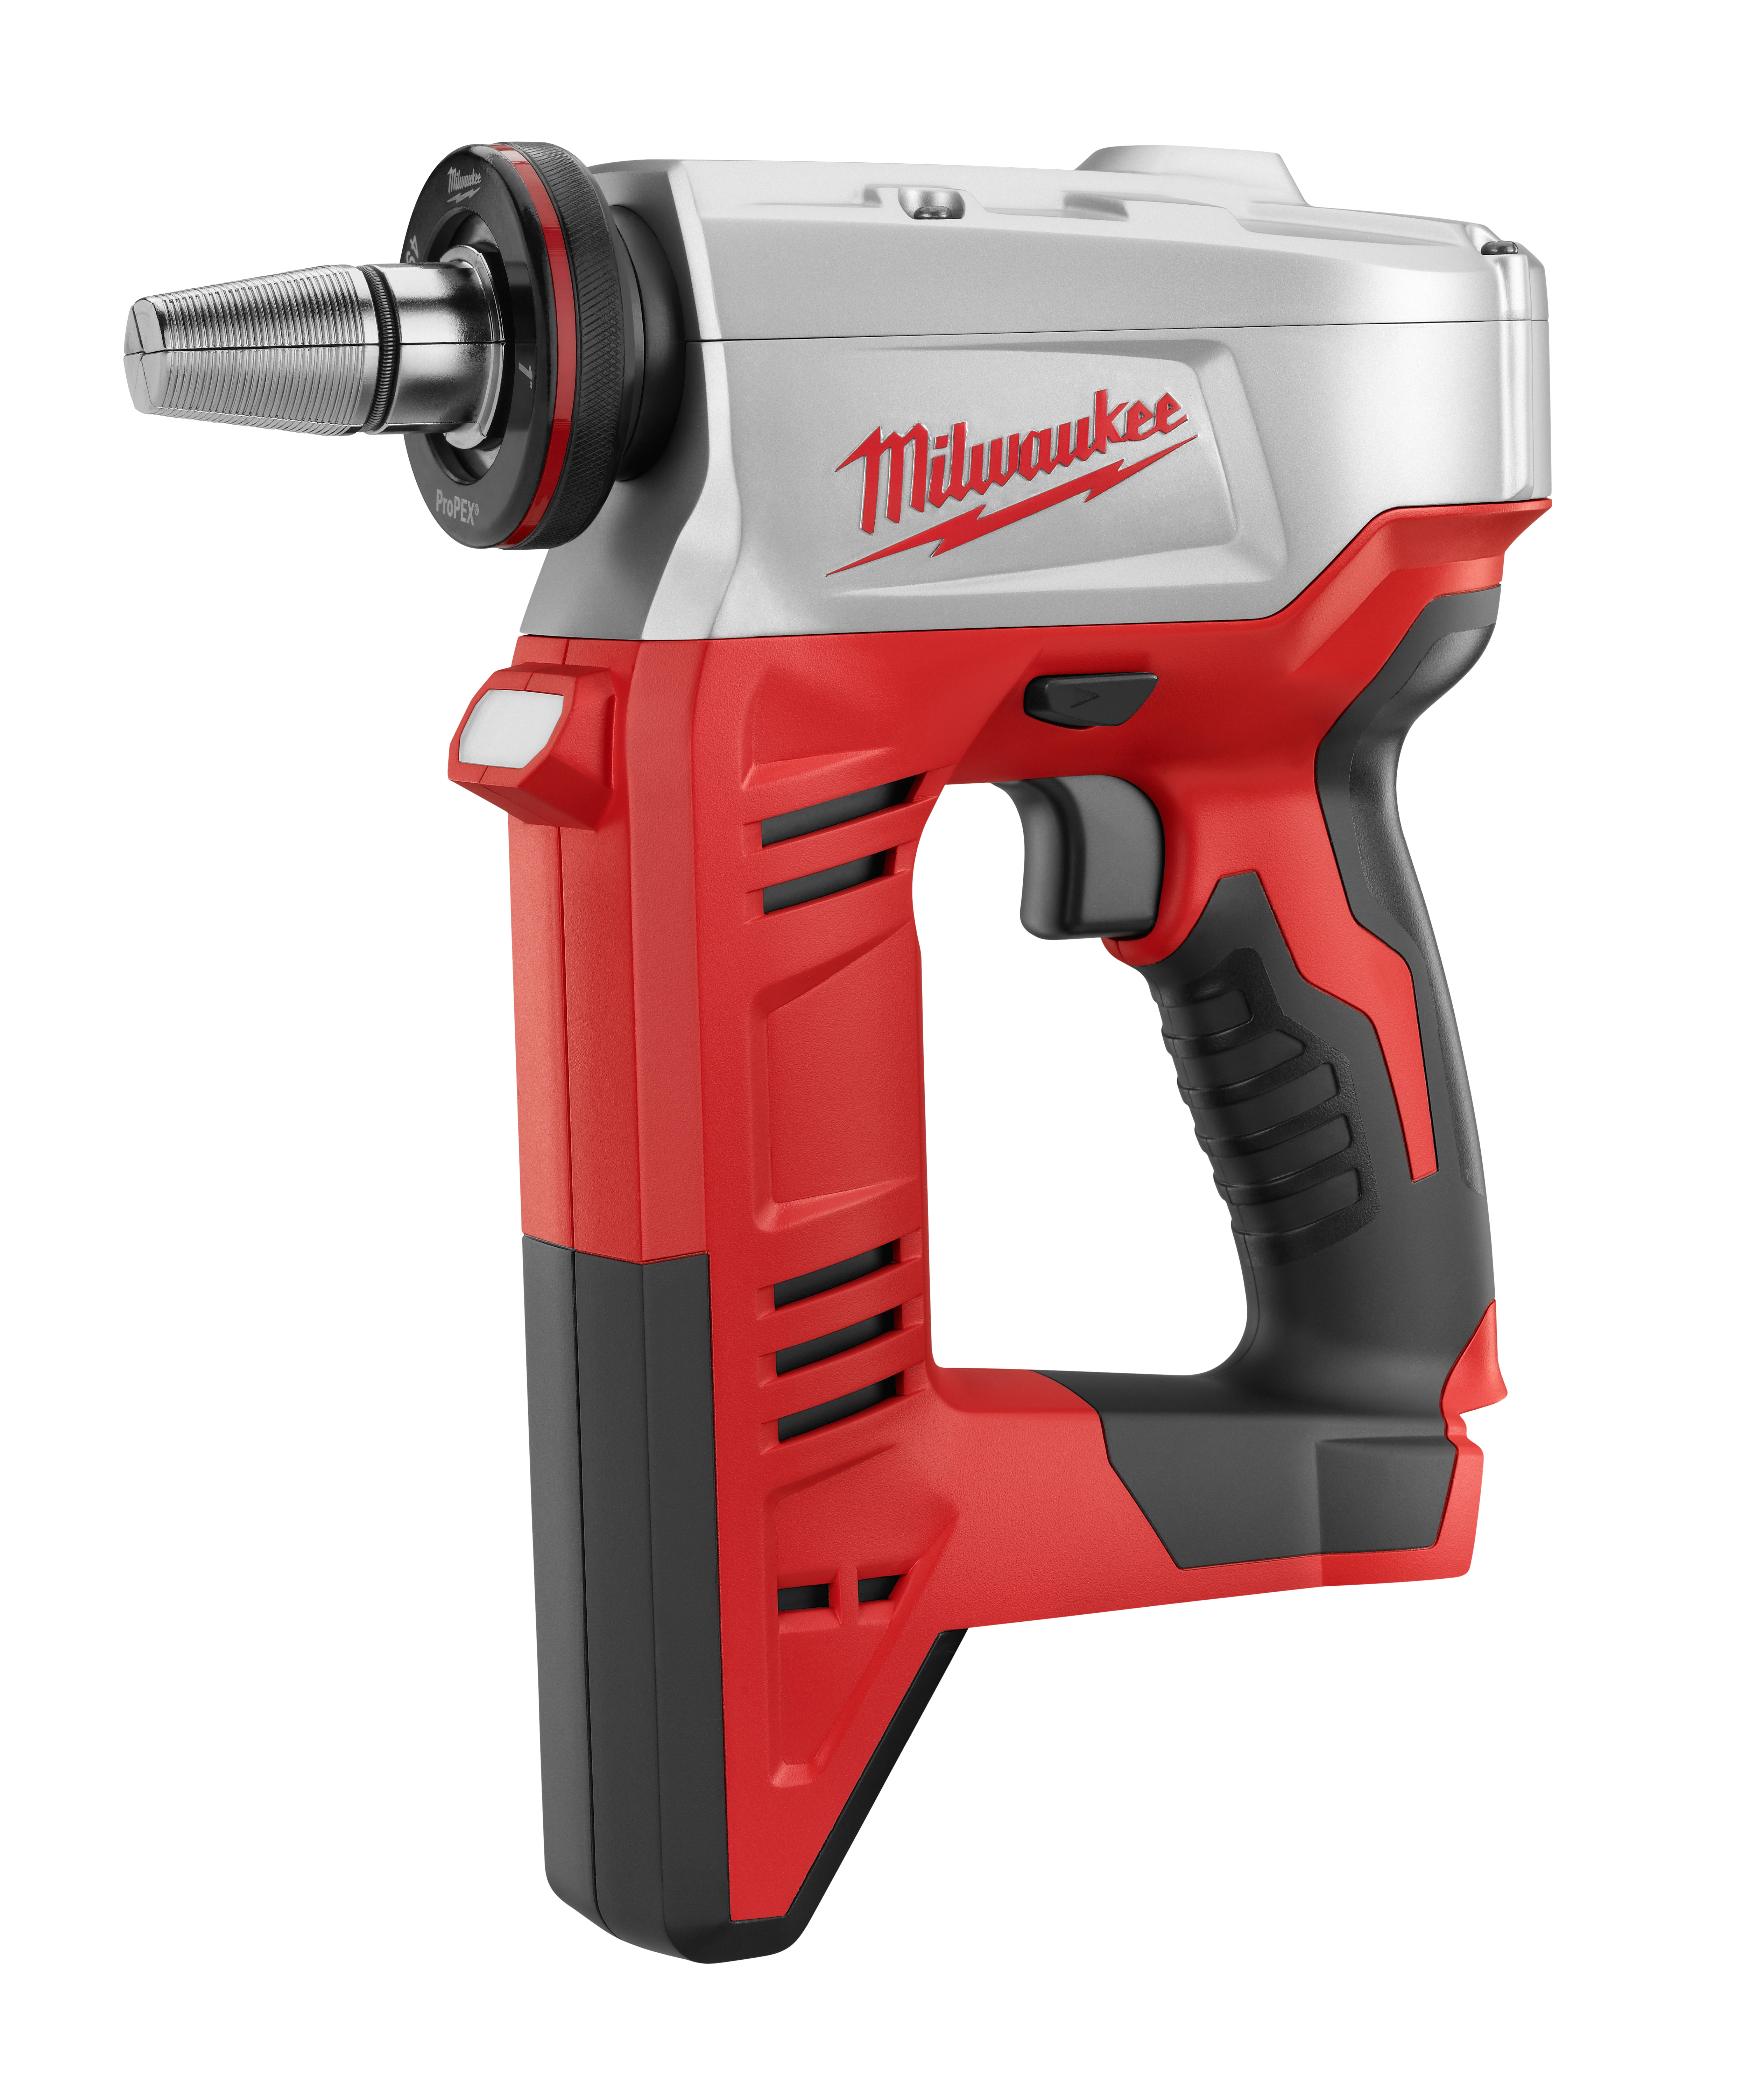 Milwaukee® ProPEX® M18™ 2632-20 Compact Cordless Expansion Tool, 3/8 to 1-1/2 in Tubing, 18 VDC, Lithium-Ion Battery